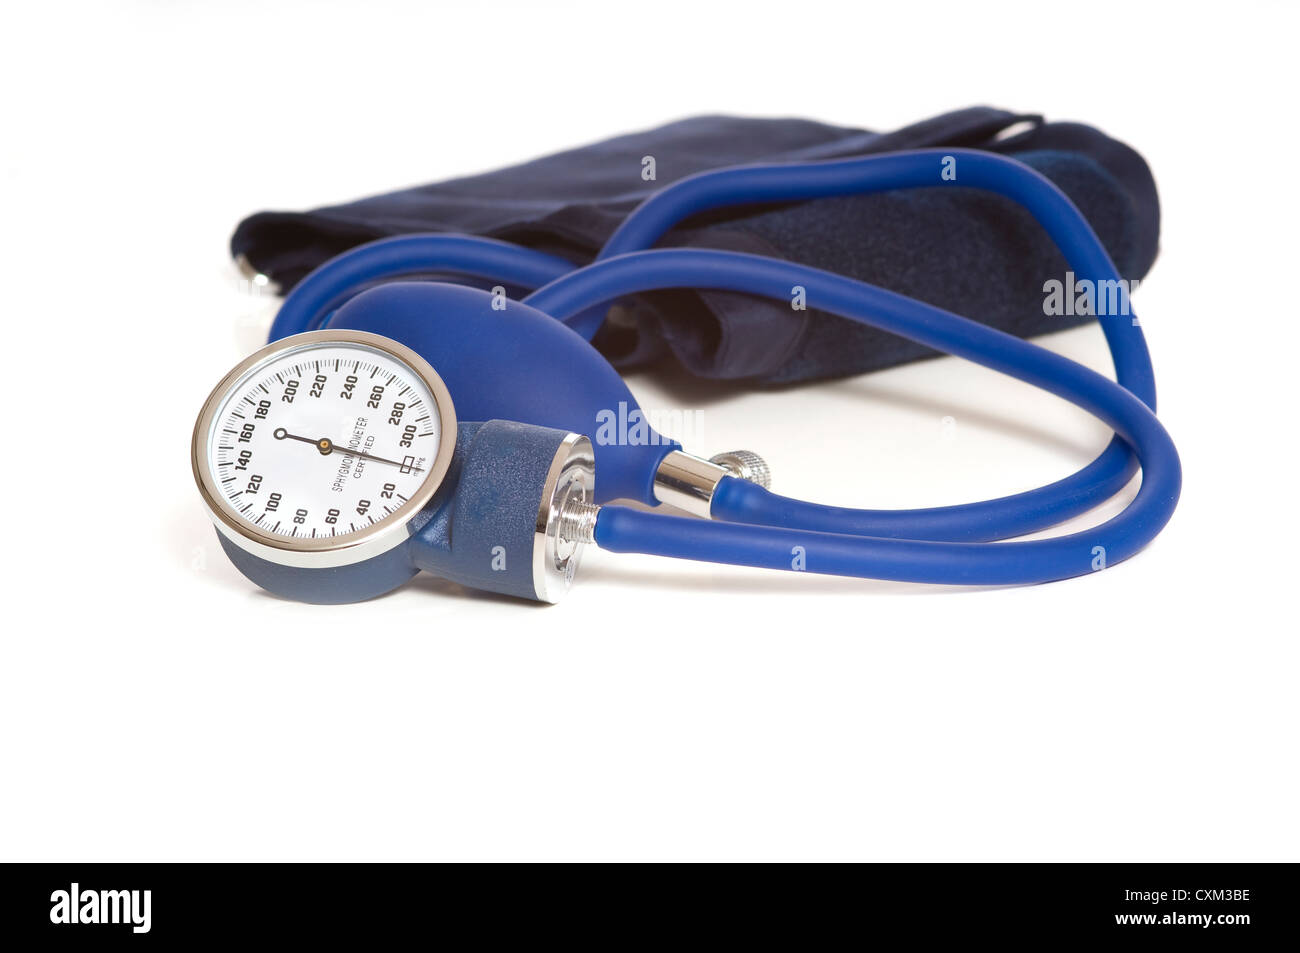 A blue blood pressure monitor or sphygmomanometer, medical device - Stock Image